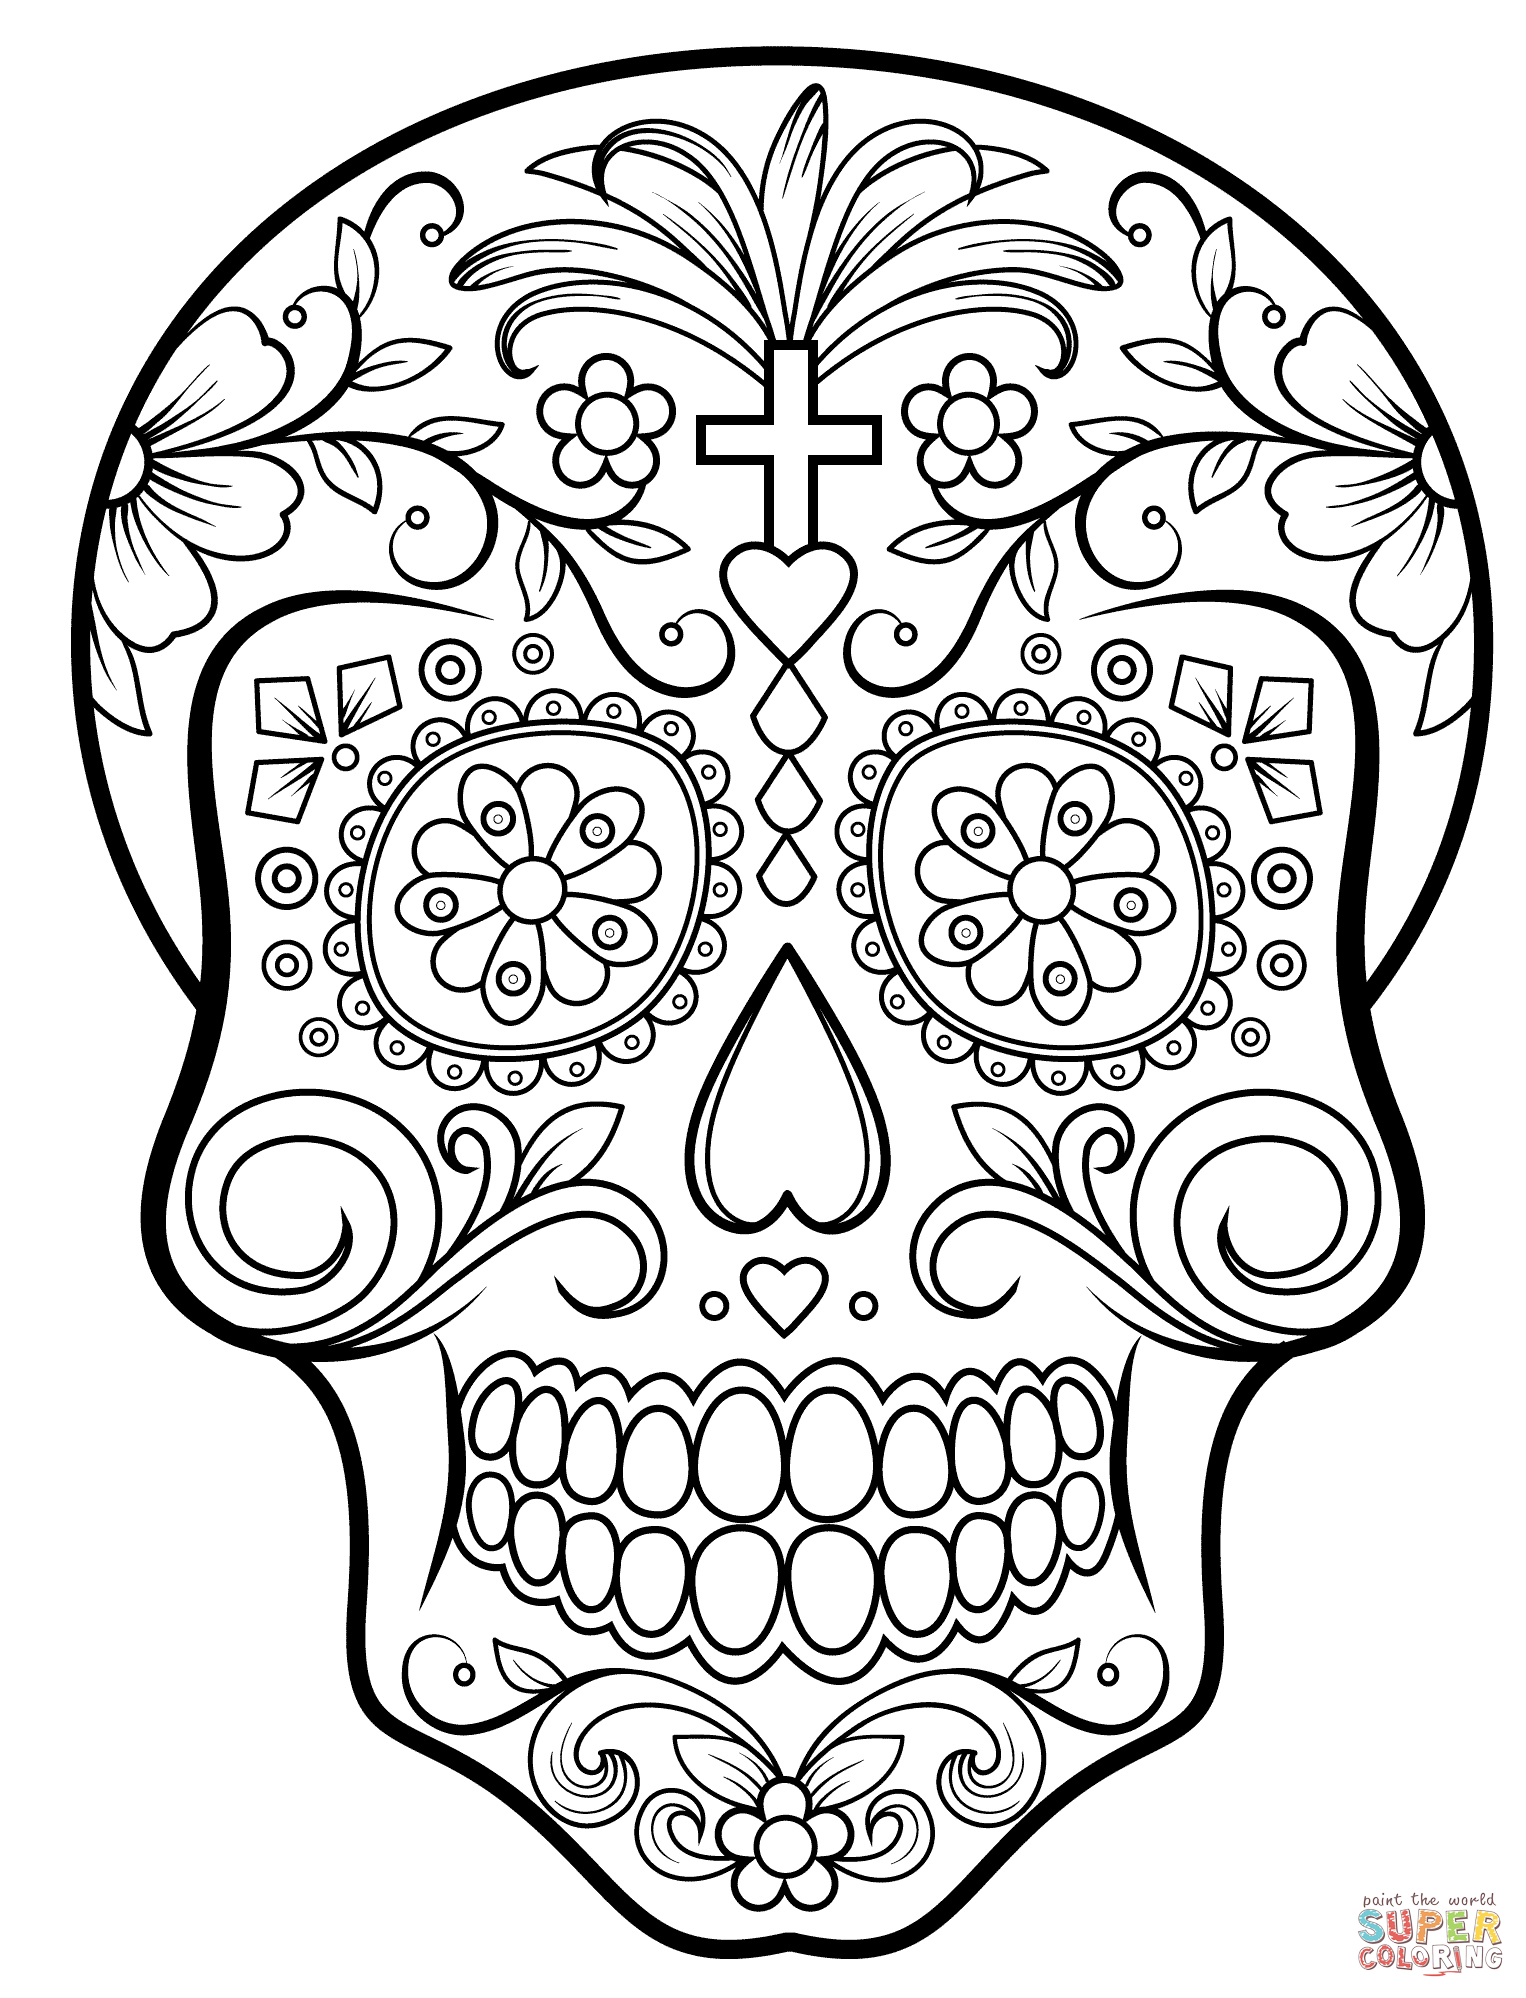 Sugar Skull Coloring Page | Free Printable Coloring Pages - Free Printable Day Of The Dead Coloring Pages